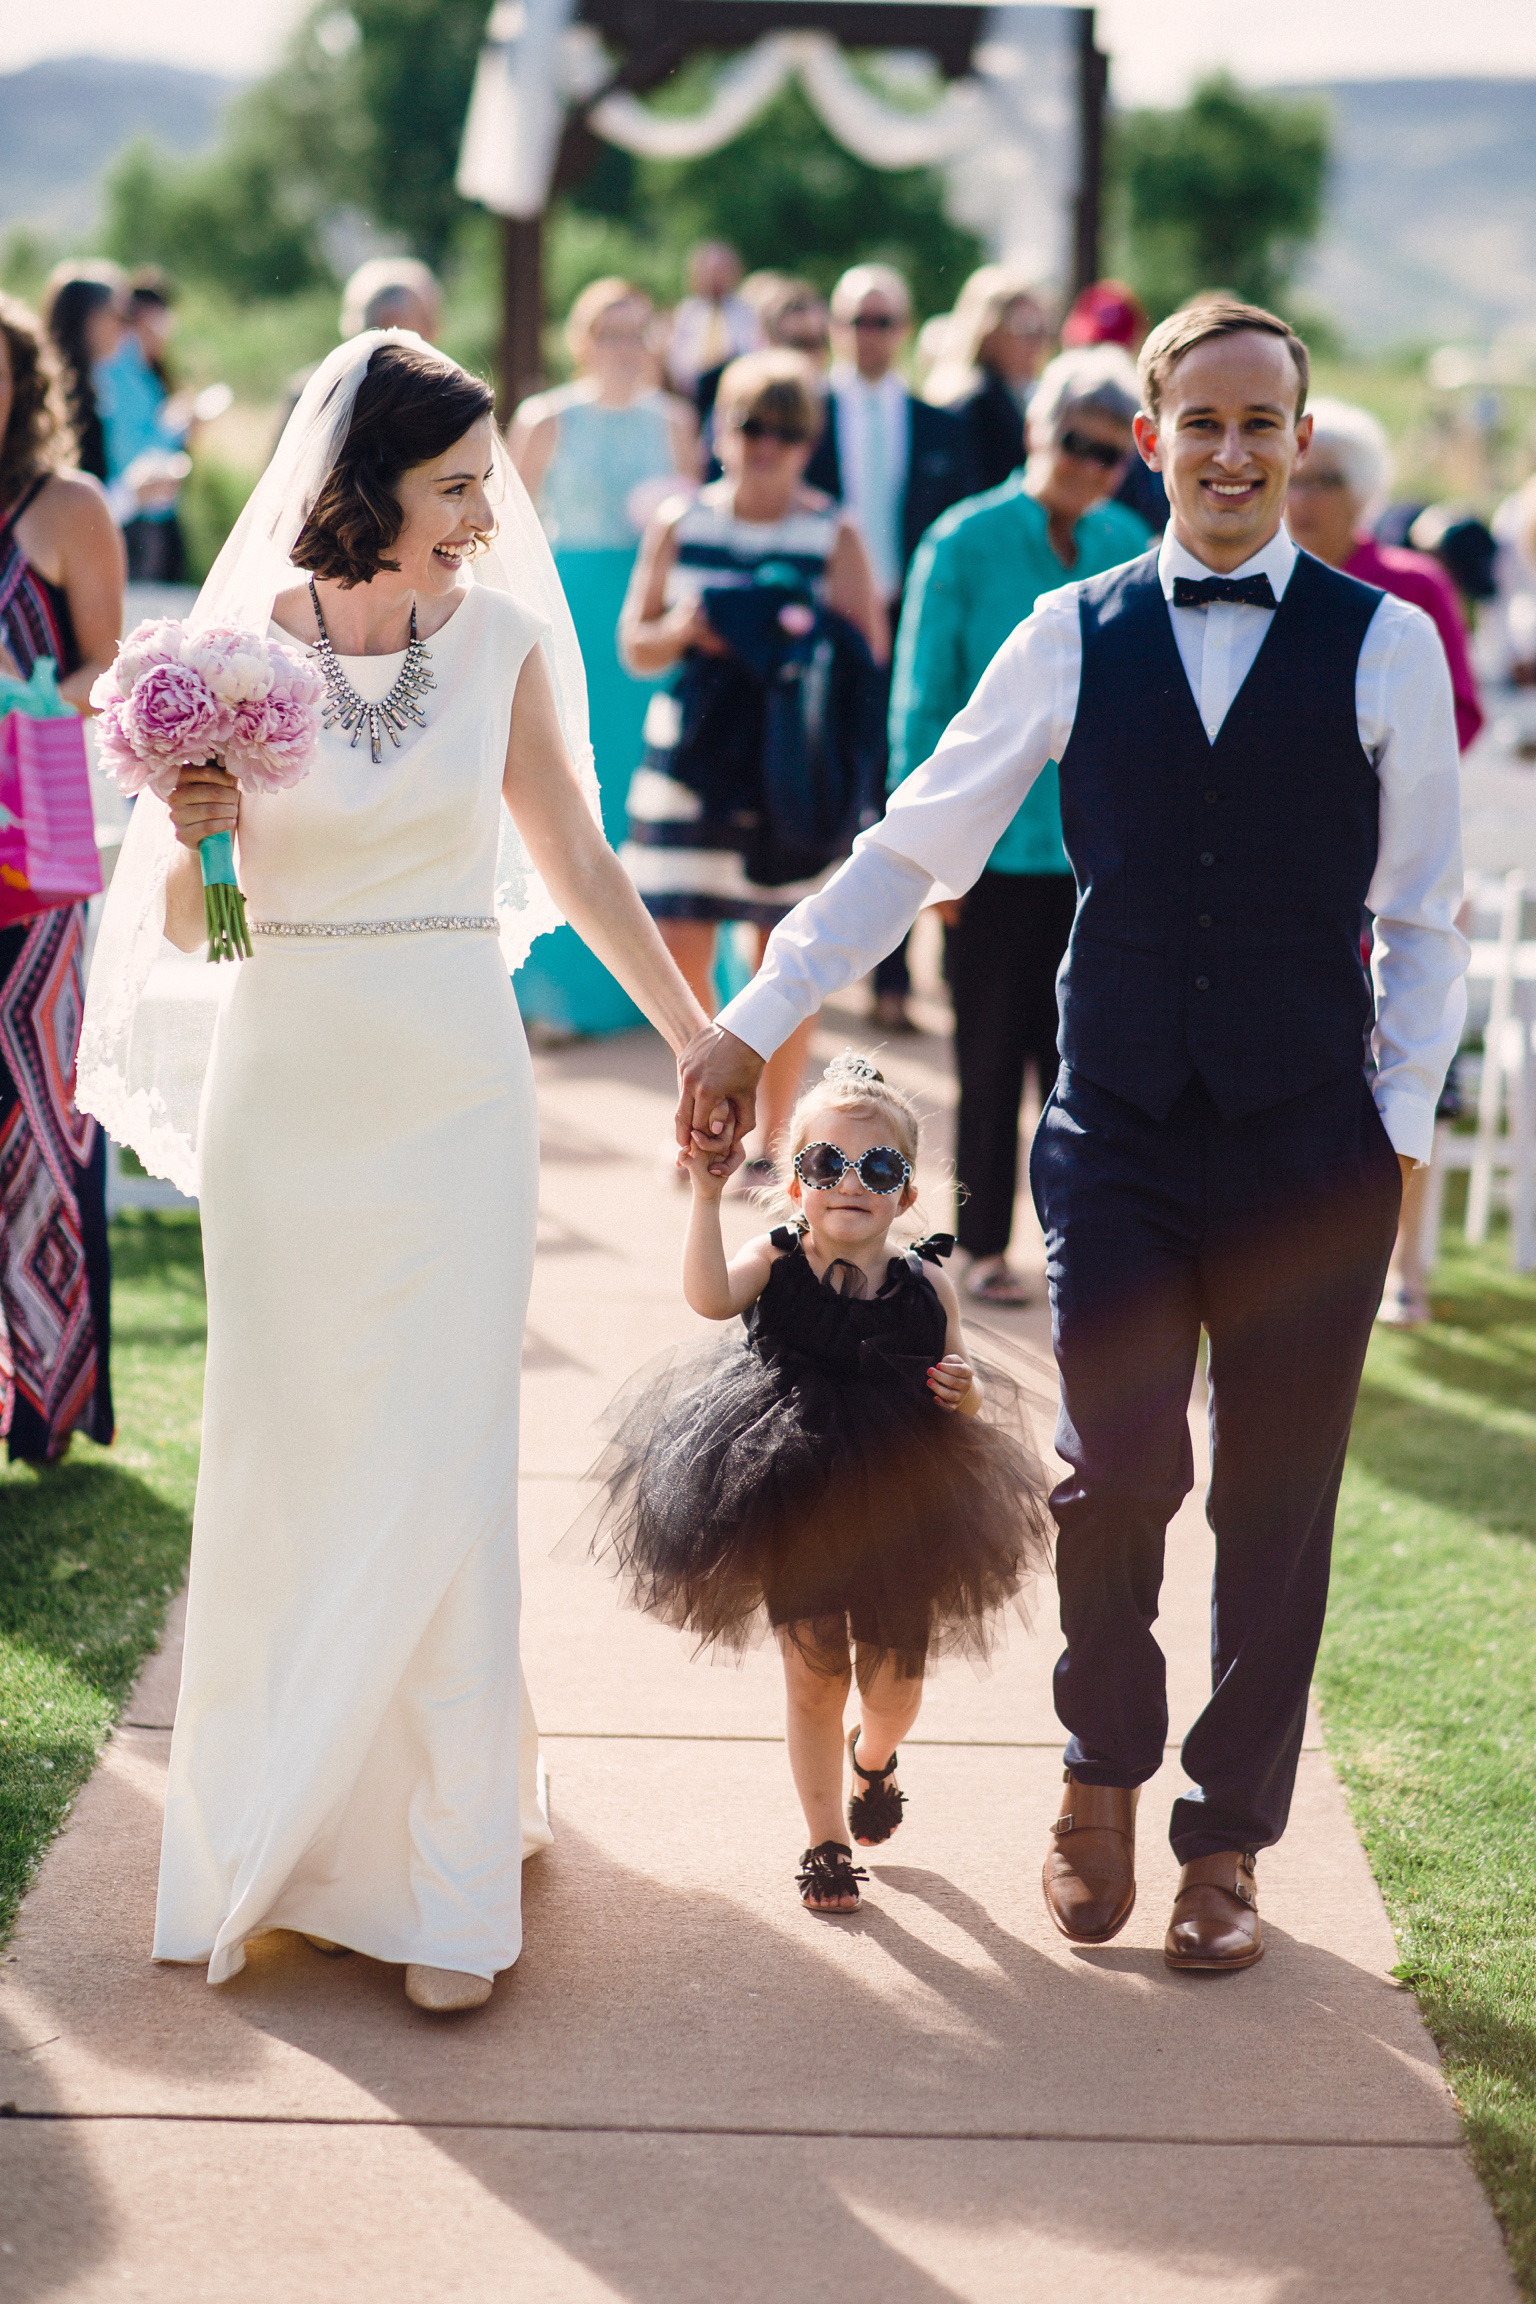 Walking down the aisle in Breakfast At Tiffany's wedding theme